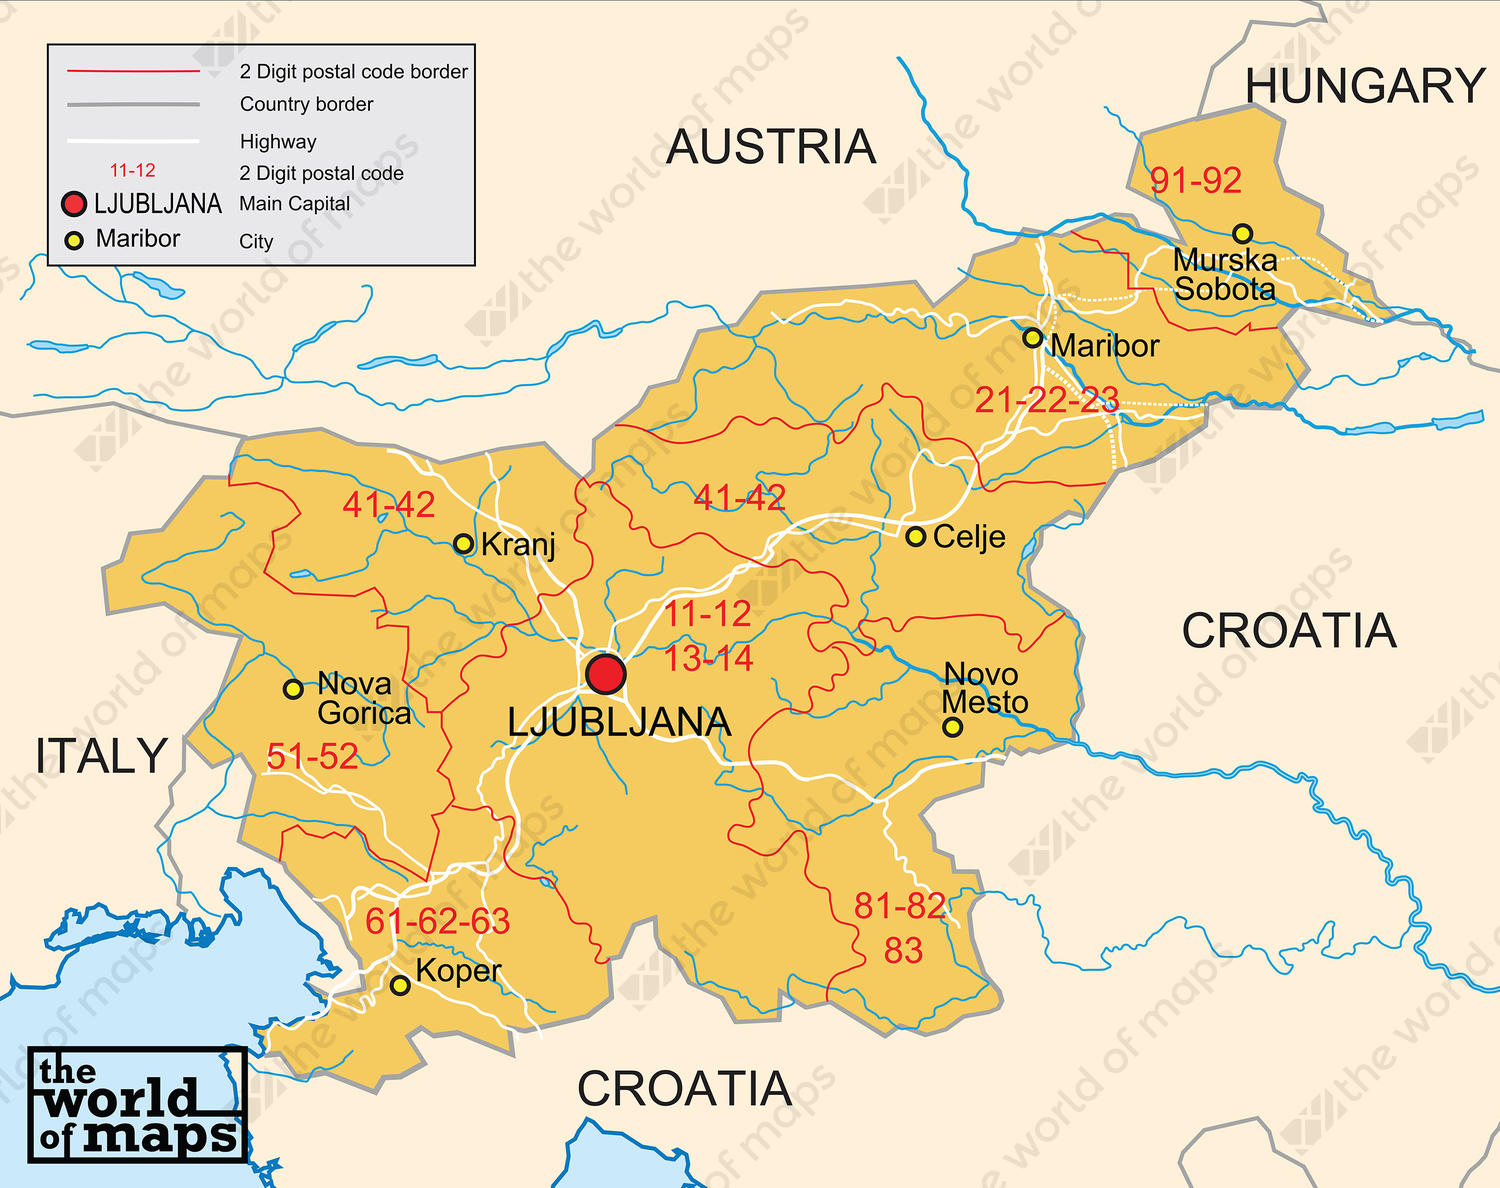 Picture of: Digital Postcode Map Slovenia 2 Digit 207 The World Of Maps Com